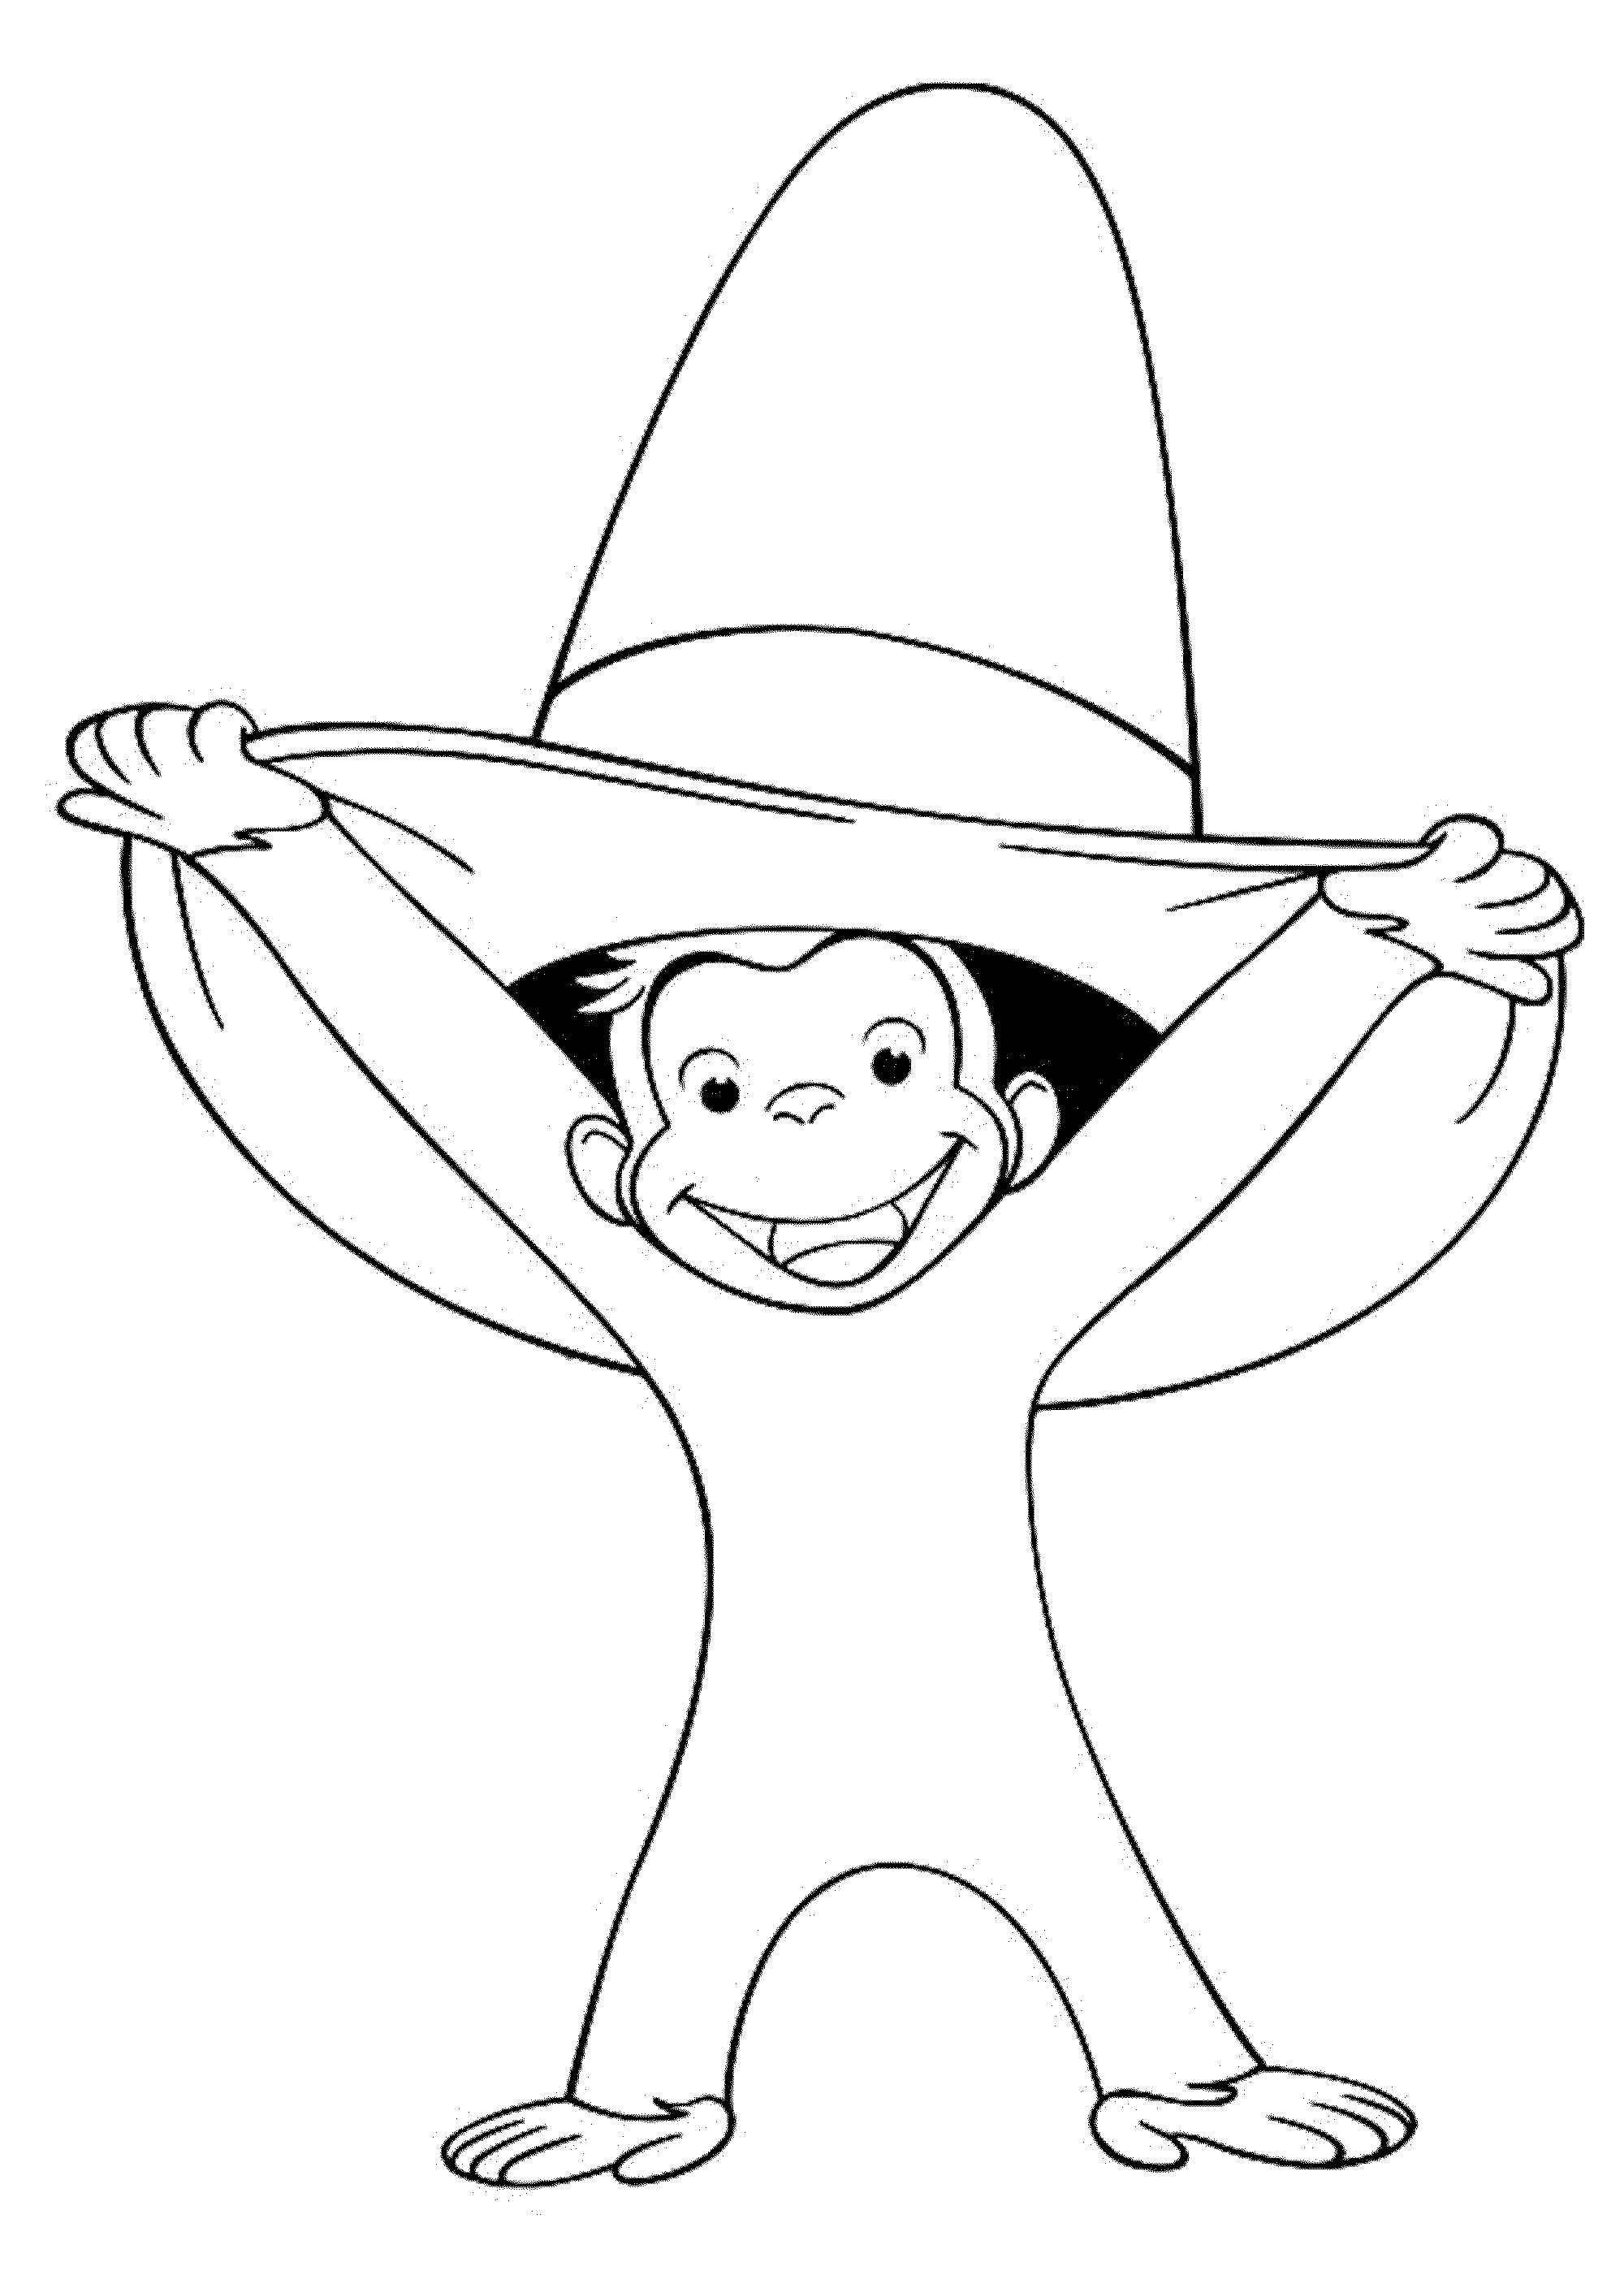 curious george coloring page - Google Search | 1st birthday ...